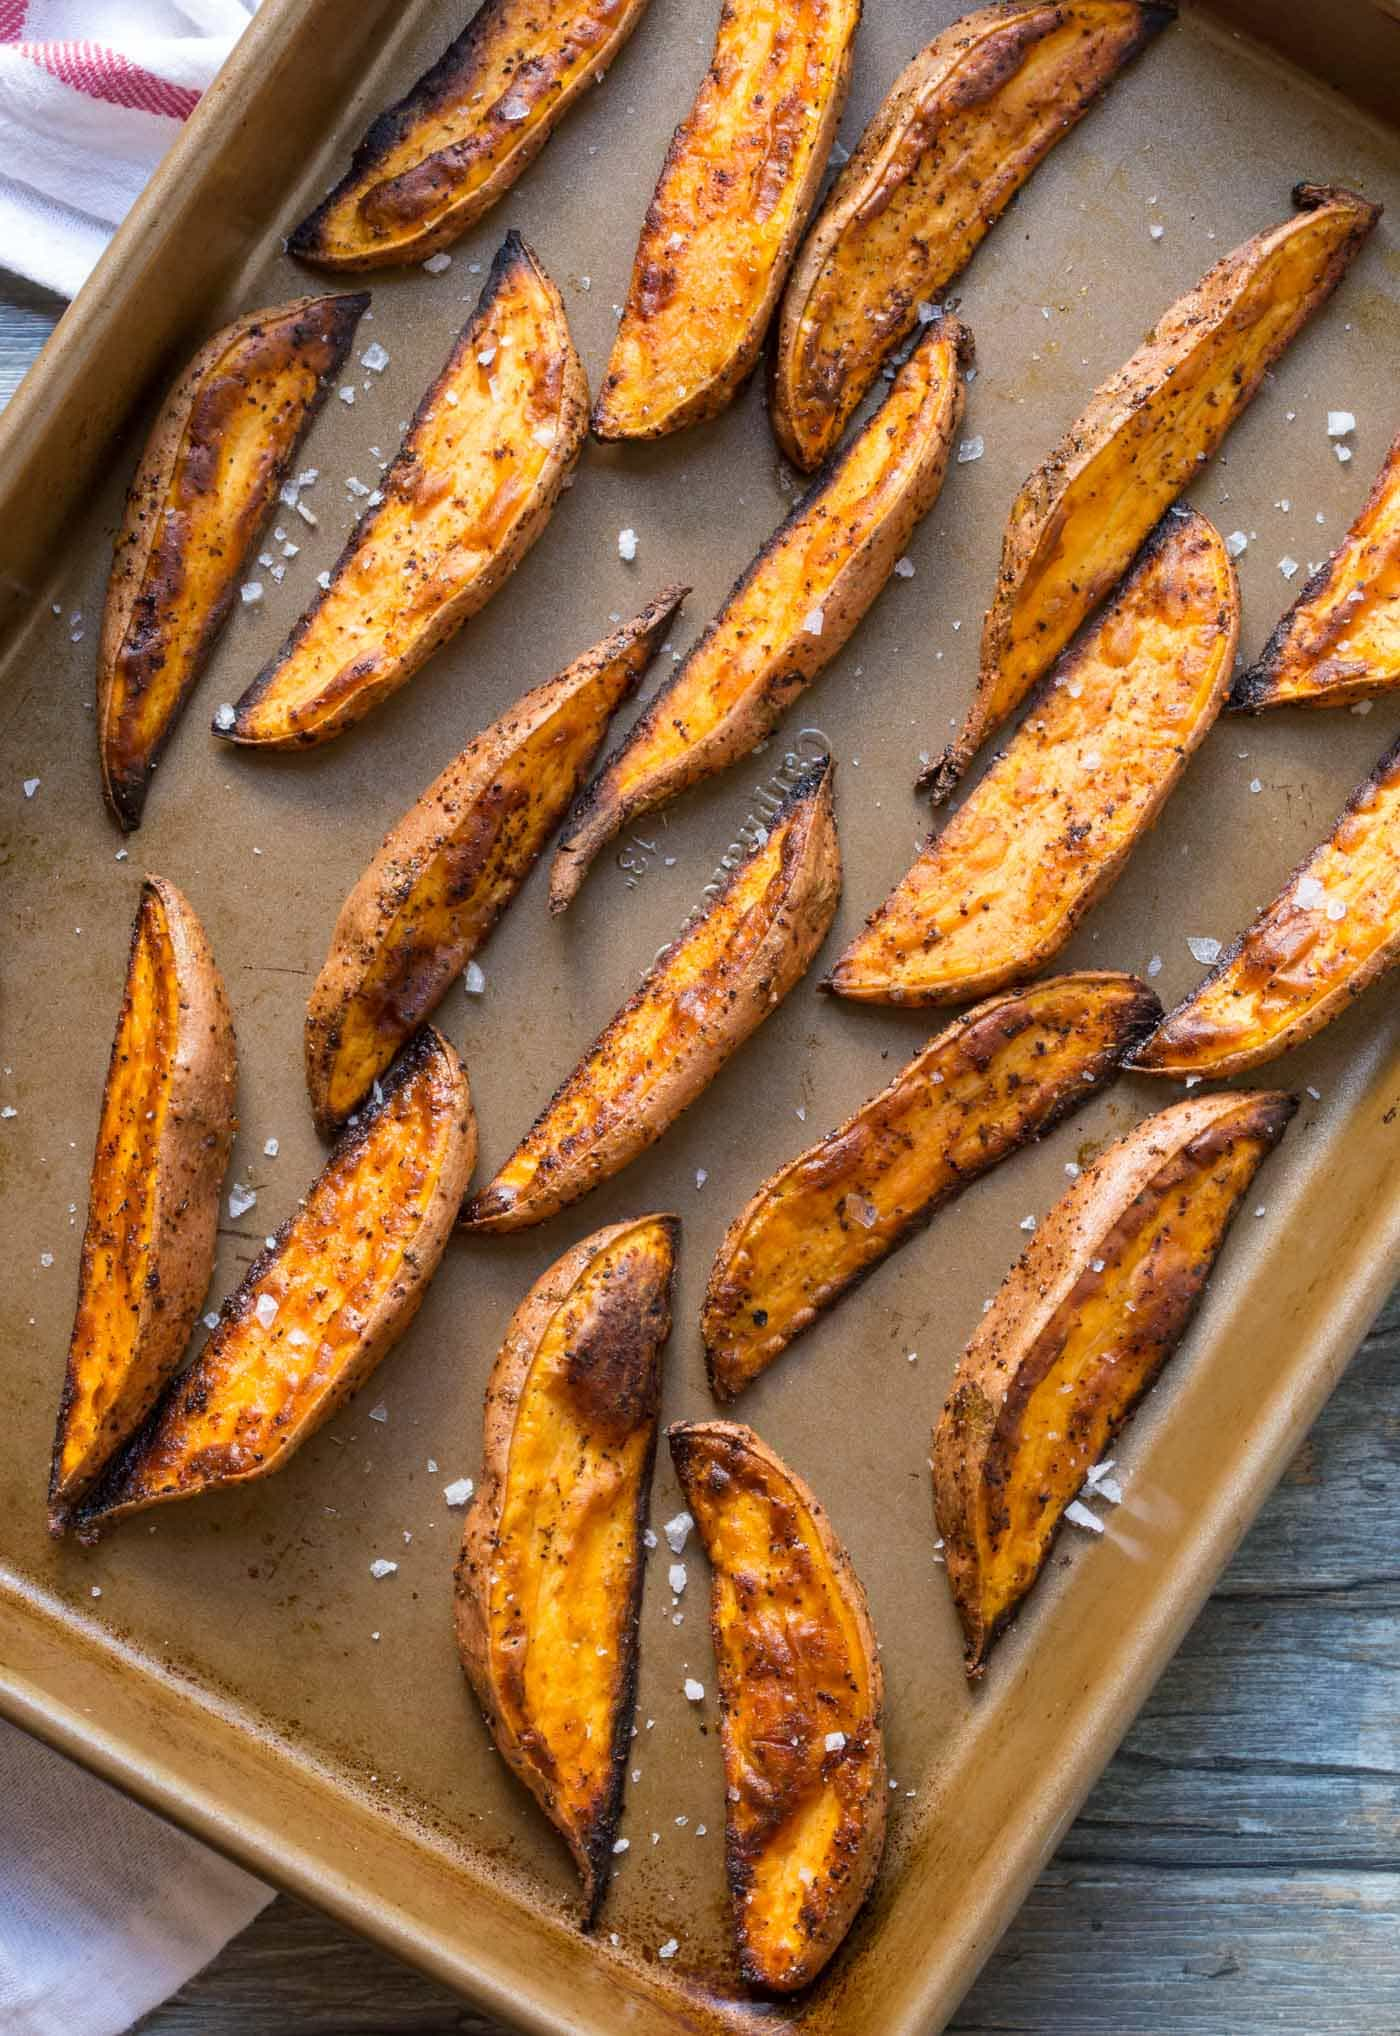 Need a quick and easy appetizer? These oven roasted Spicy Sweet Potato Wedges couldn't be simpler to make, and they pair well with nearly everything.